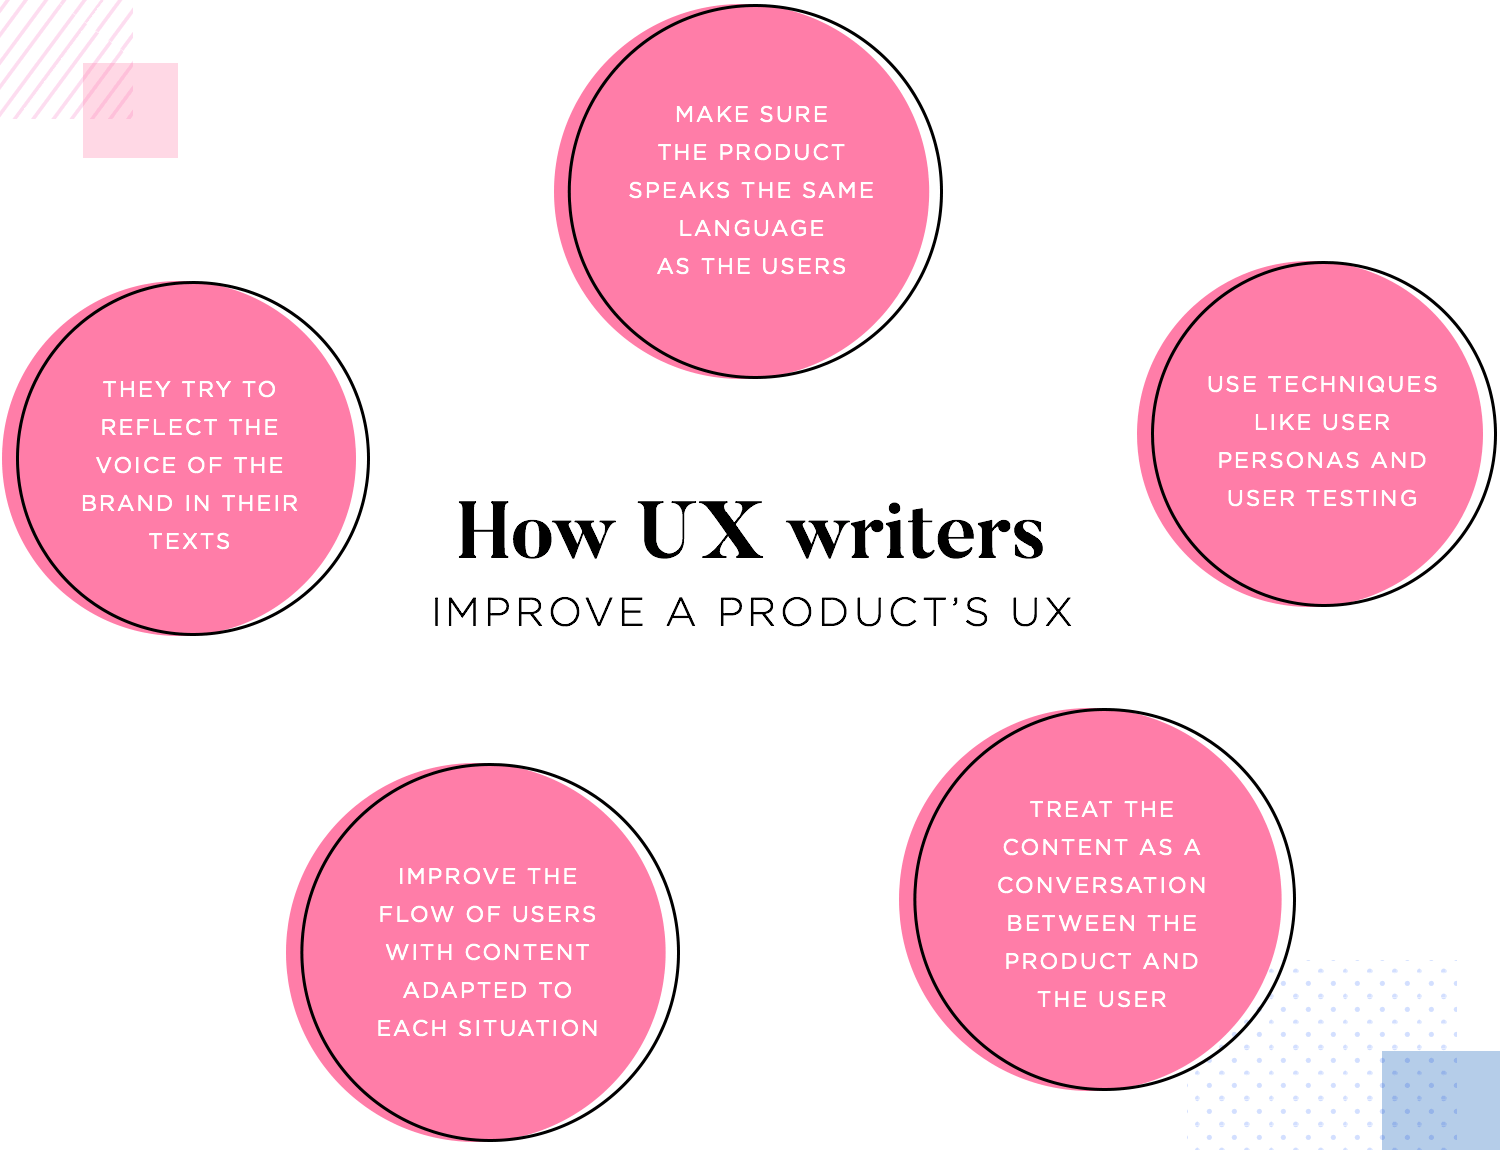 UX writing - tone and voice are crucial